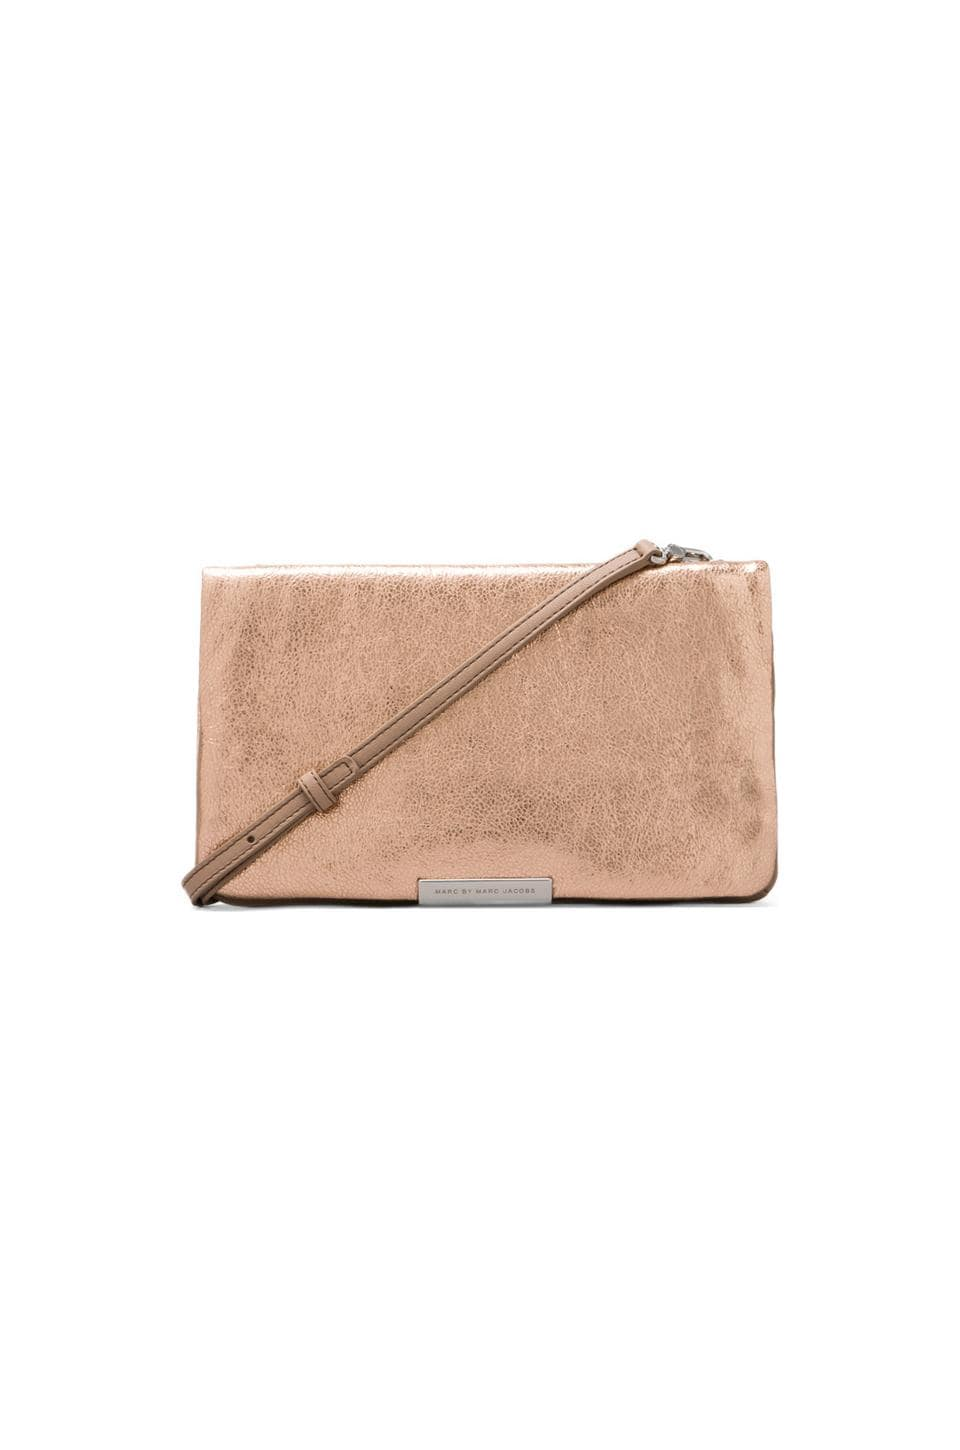 Marc by Marc Jacobs Raveheart Clutch in Rose Gold